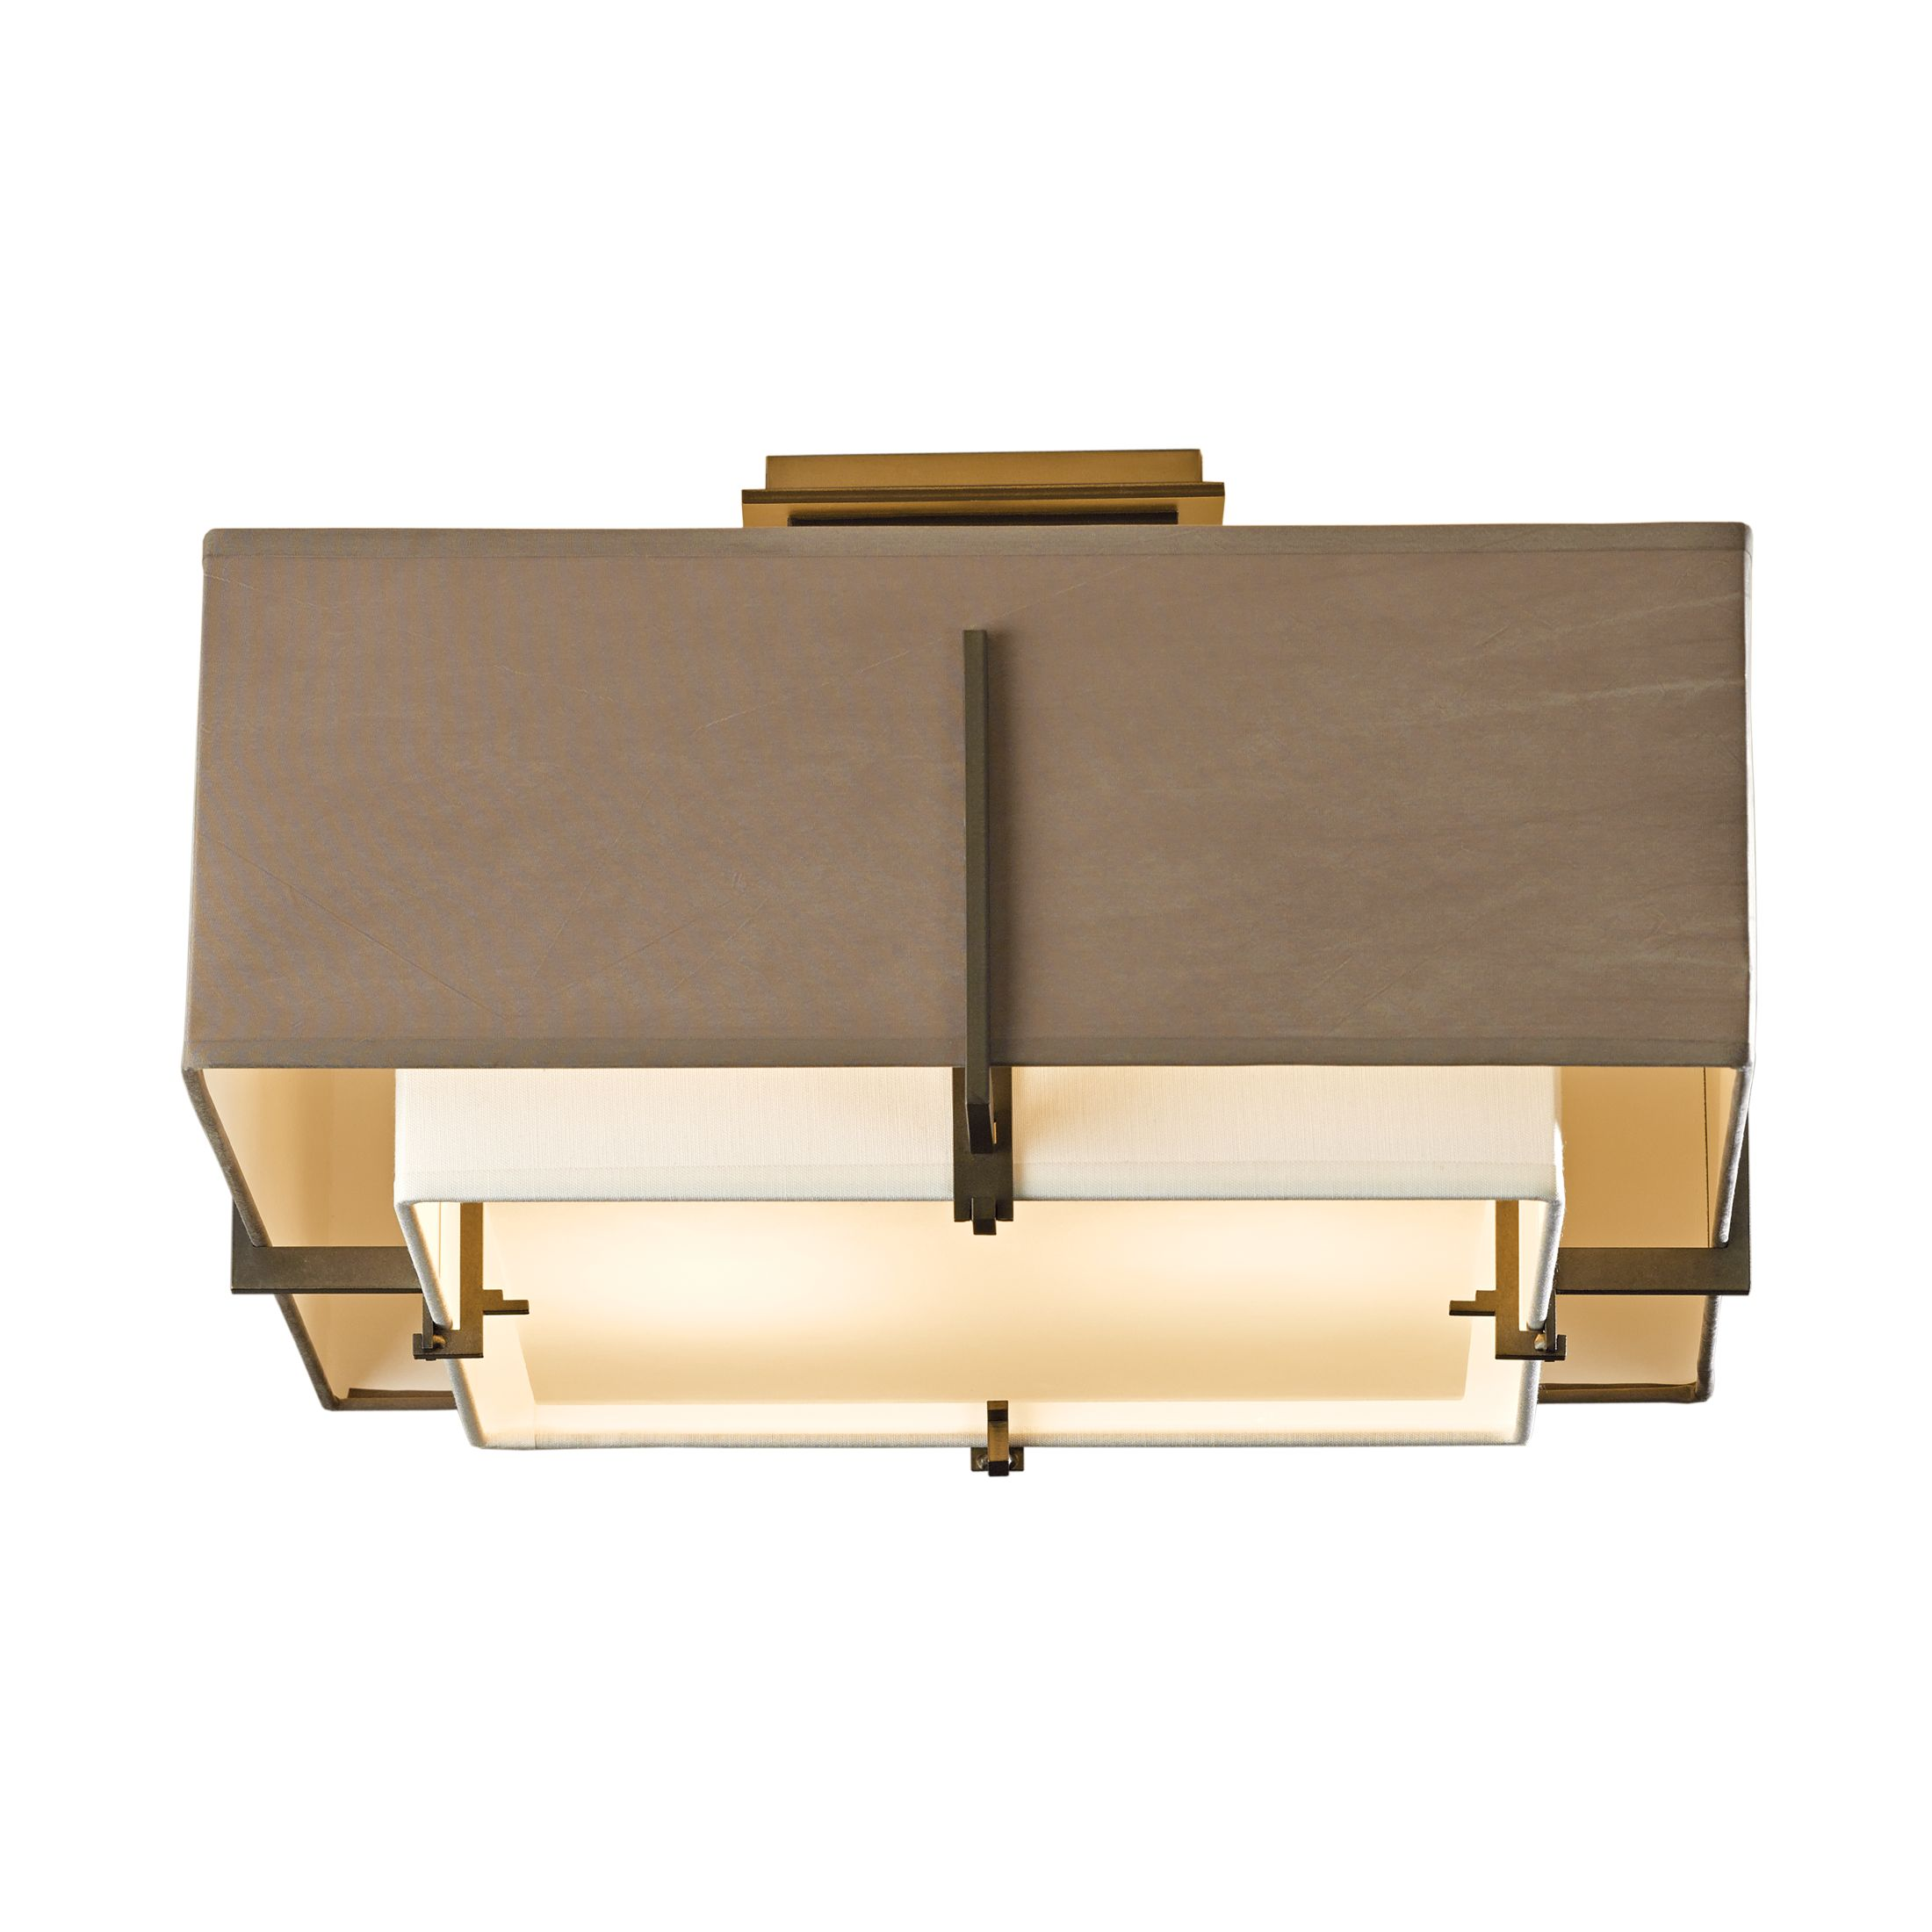 Exos Square Small Double Shade Semi Flush Hubbardton Forge